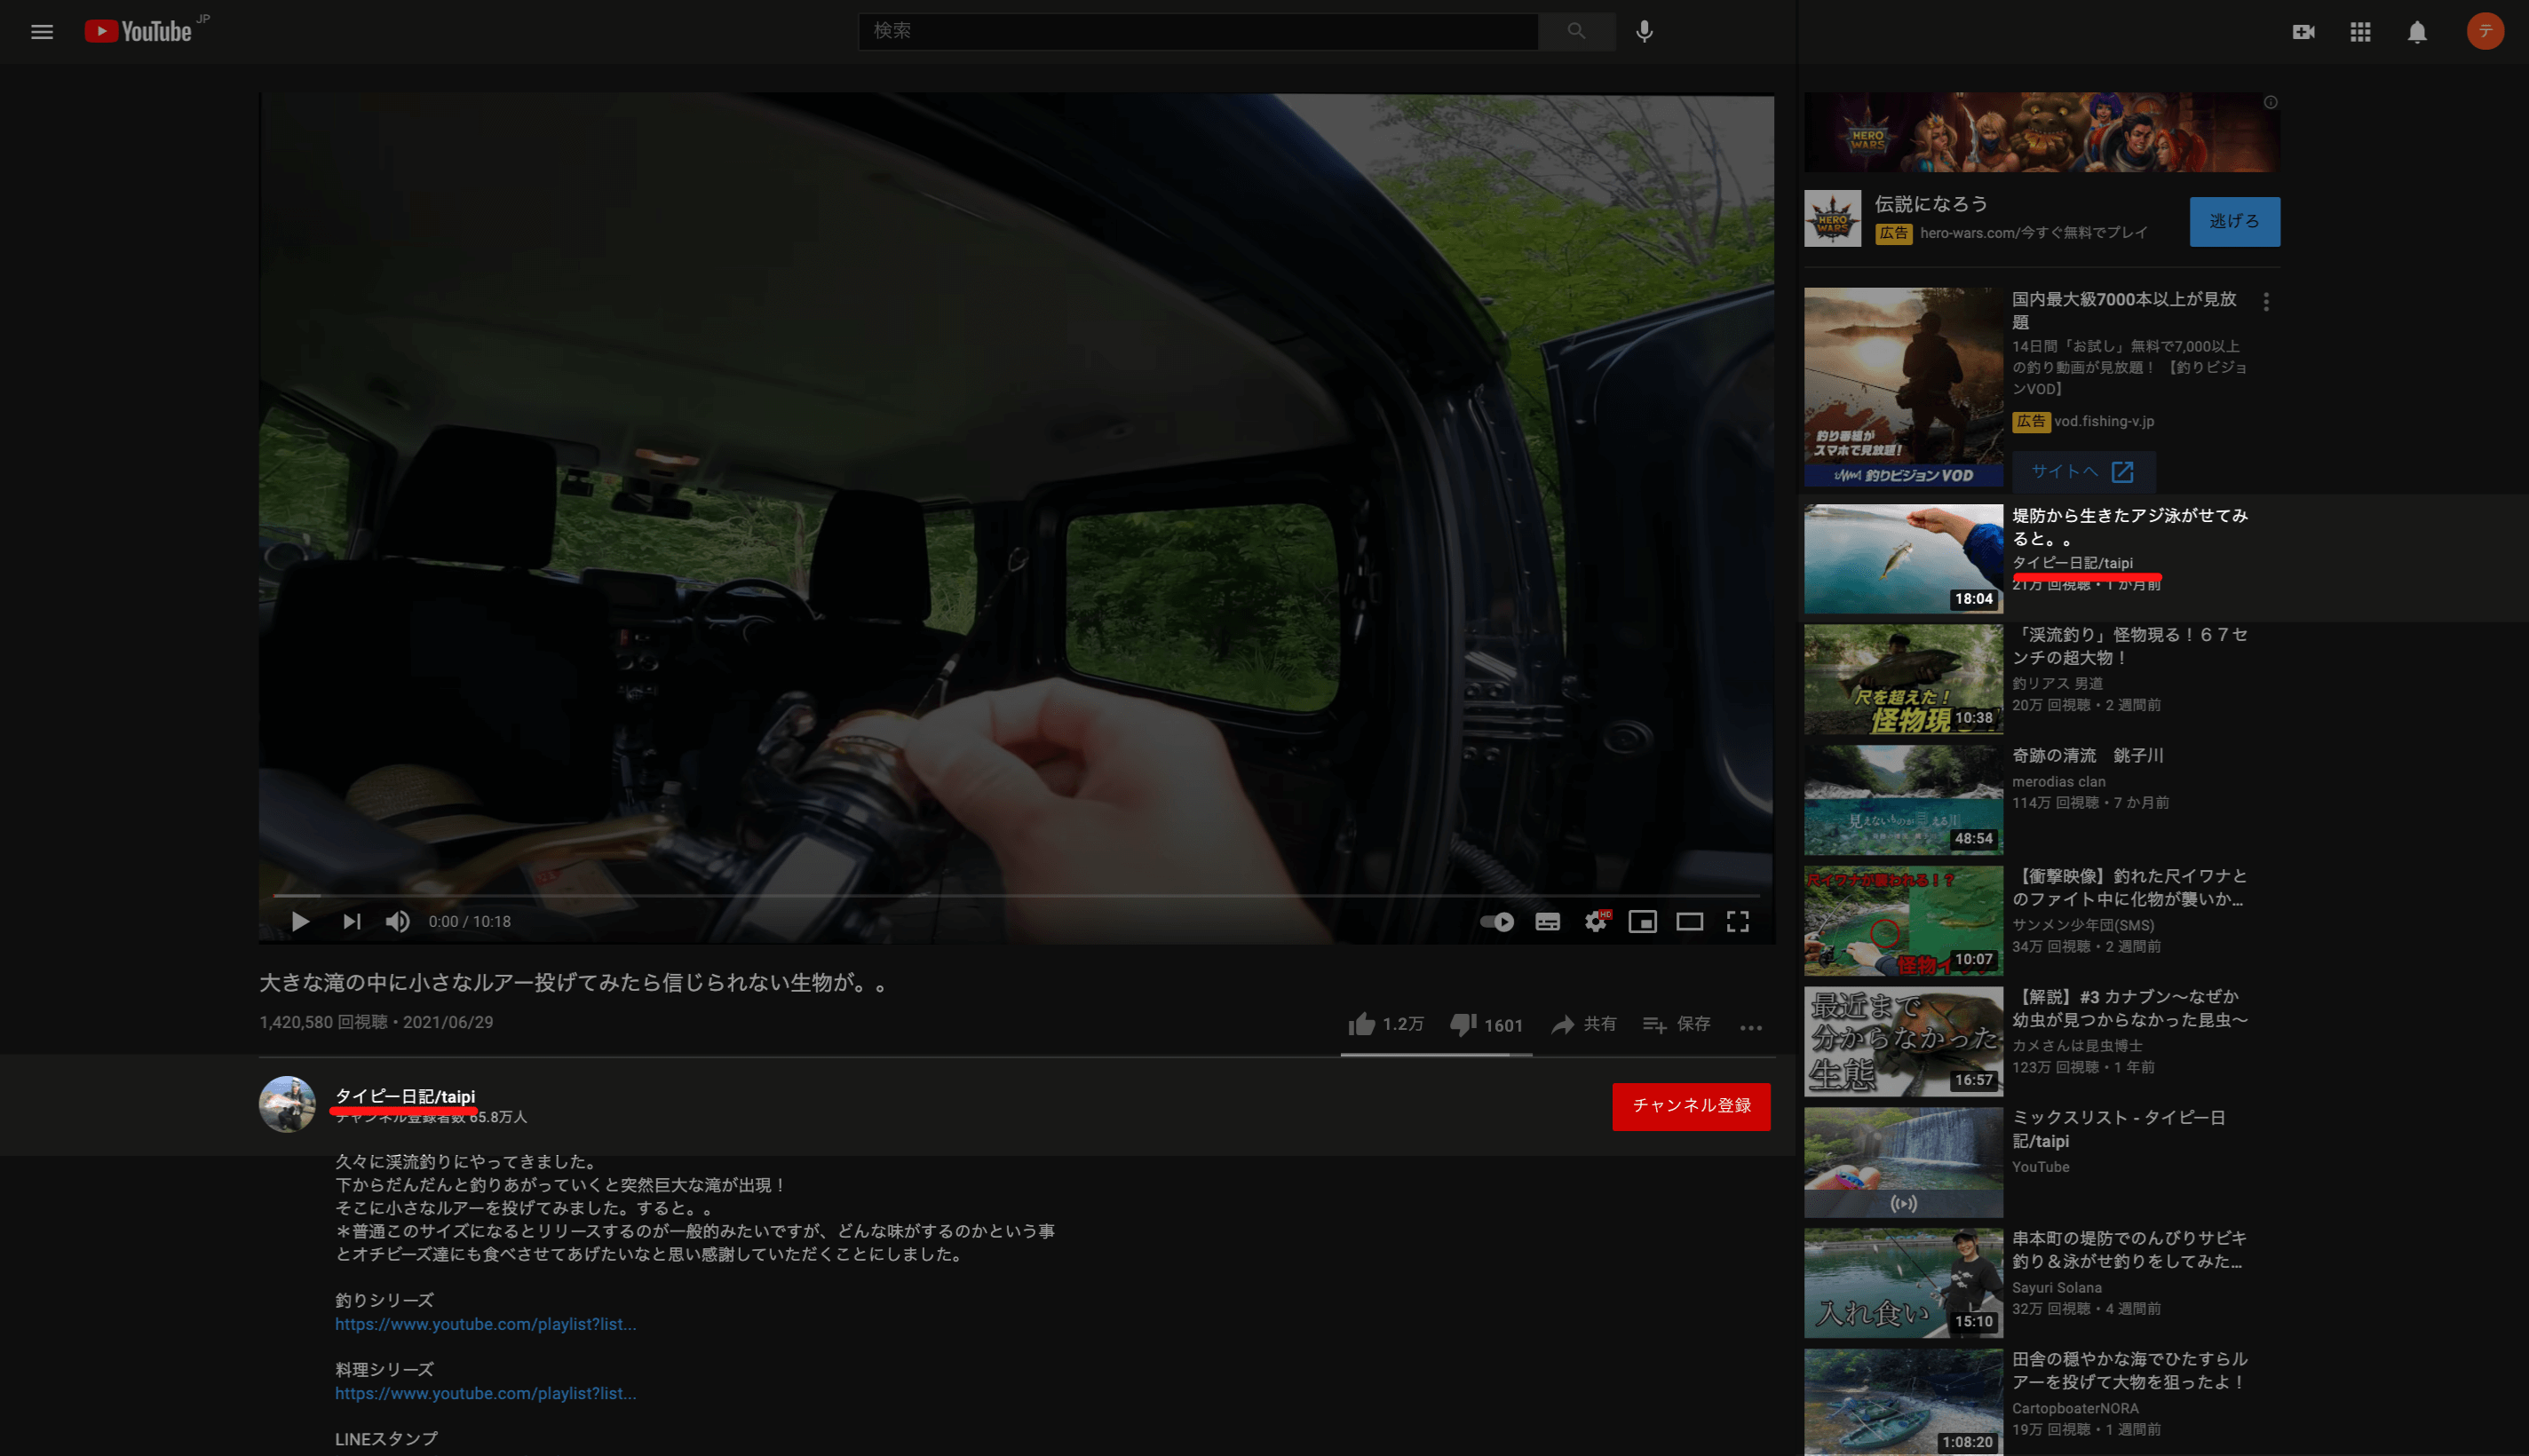 youtube-now playing video-related content